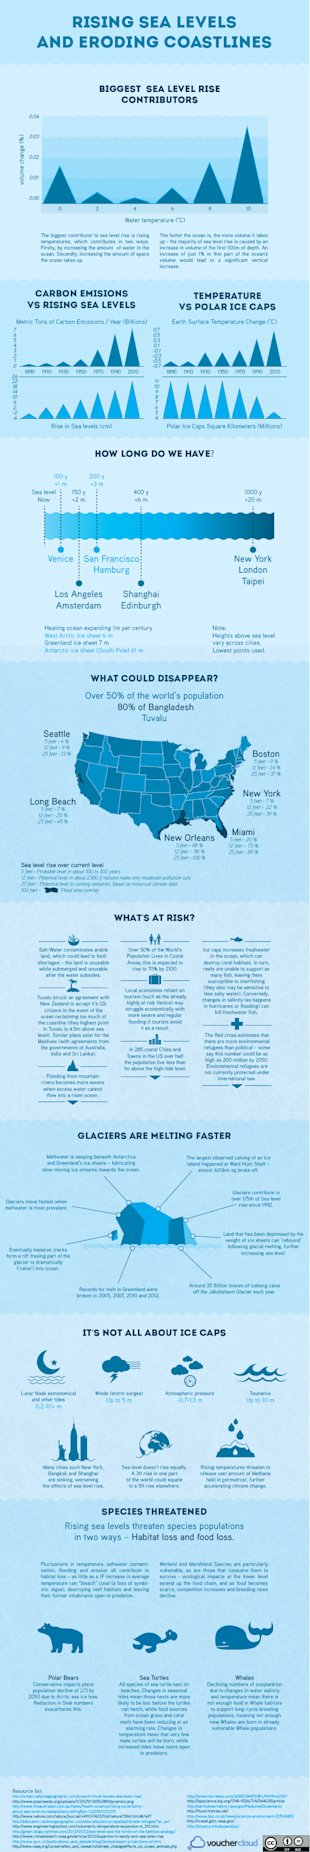 Rising Sea Levels and Eroding Coastlines image Rising Sea Levels Infograpic